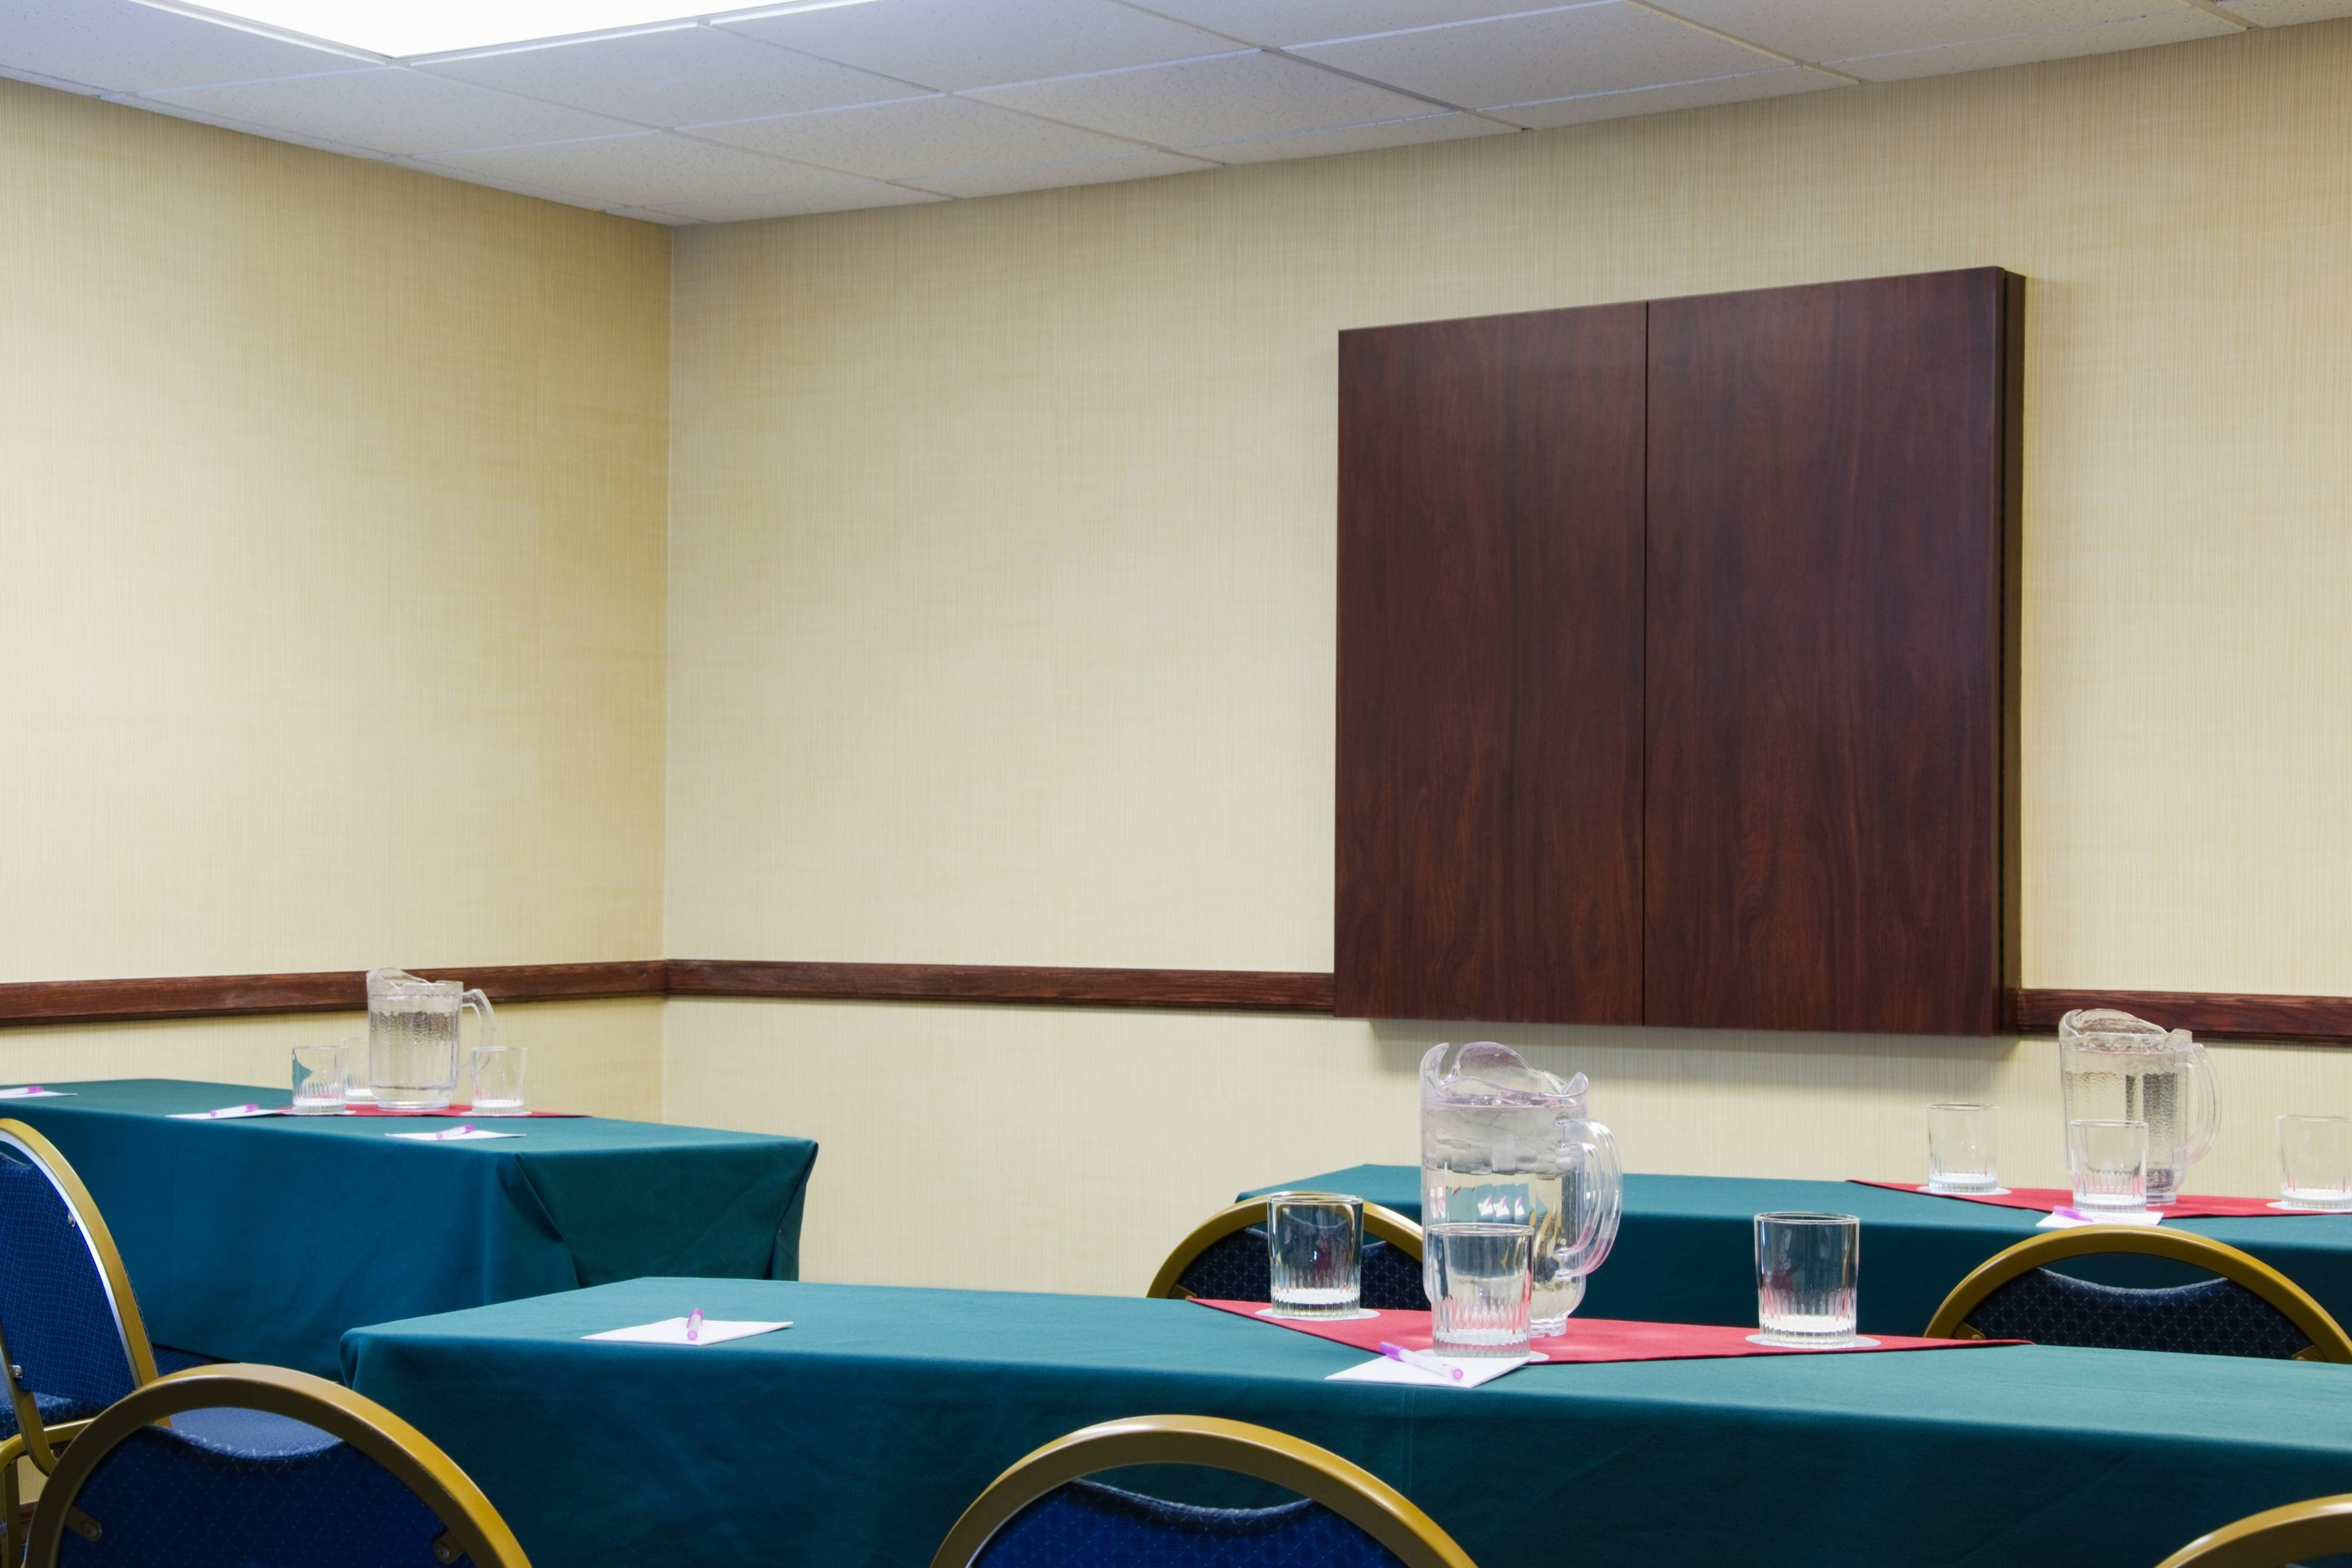 SpringHill Suites St. Louis Meeting Room